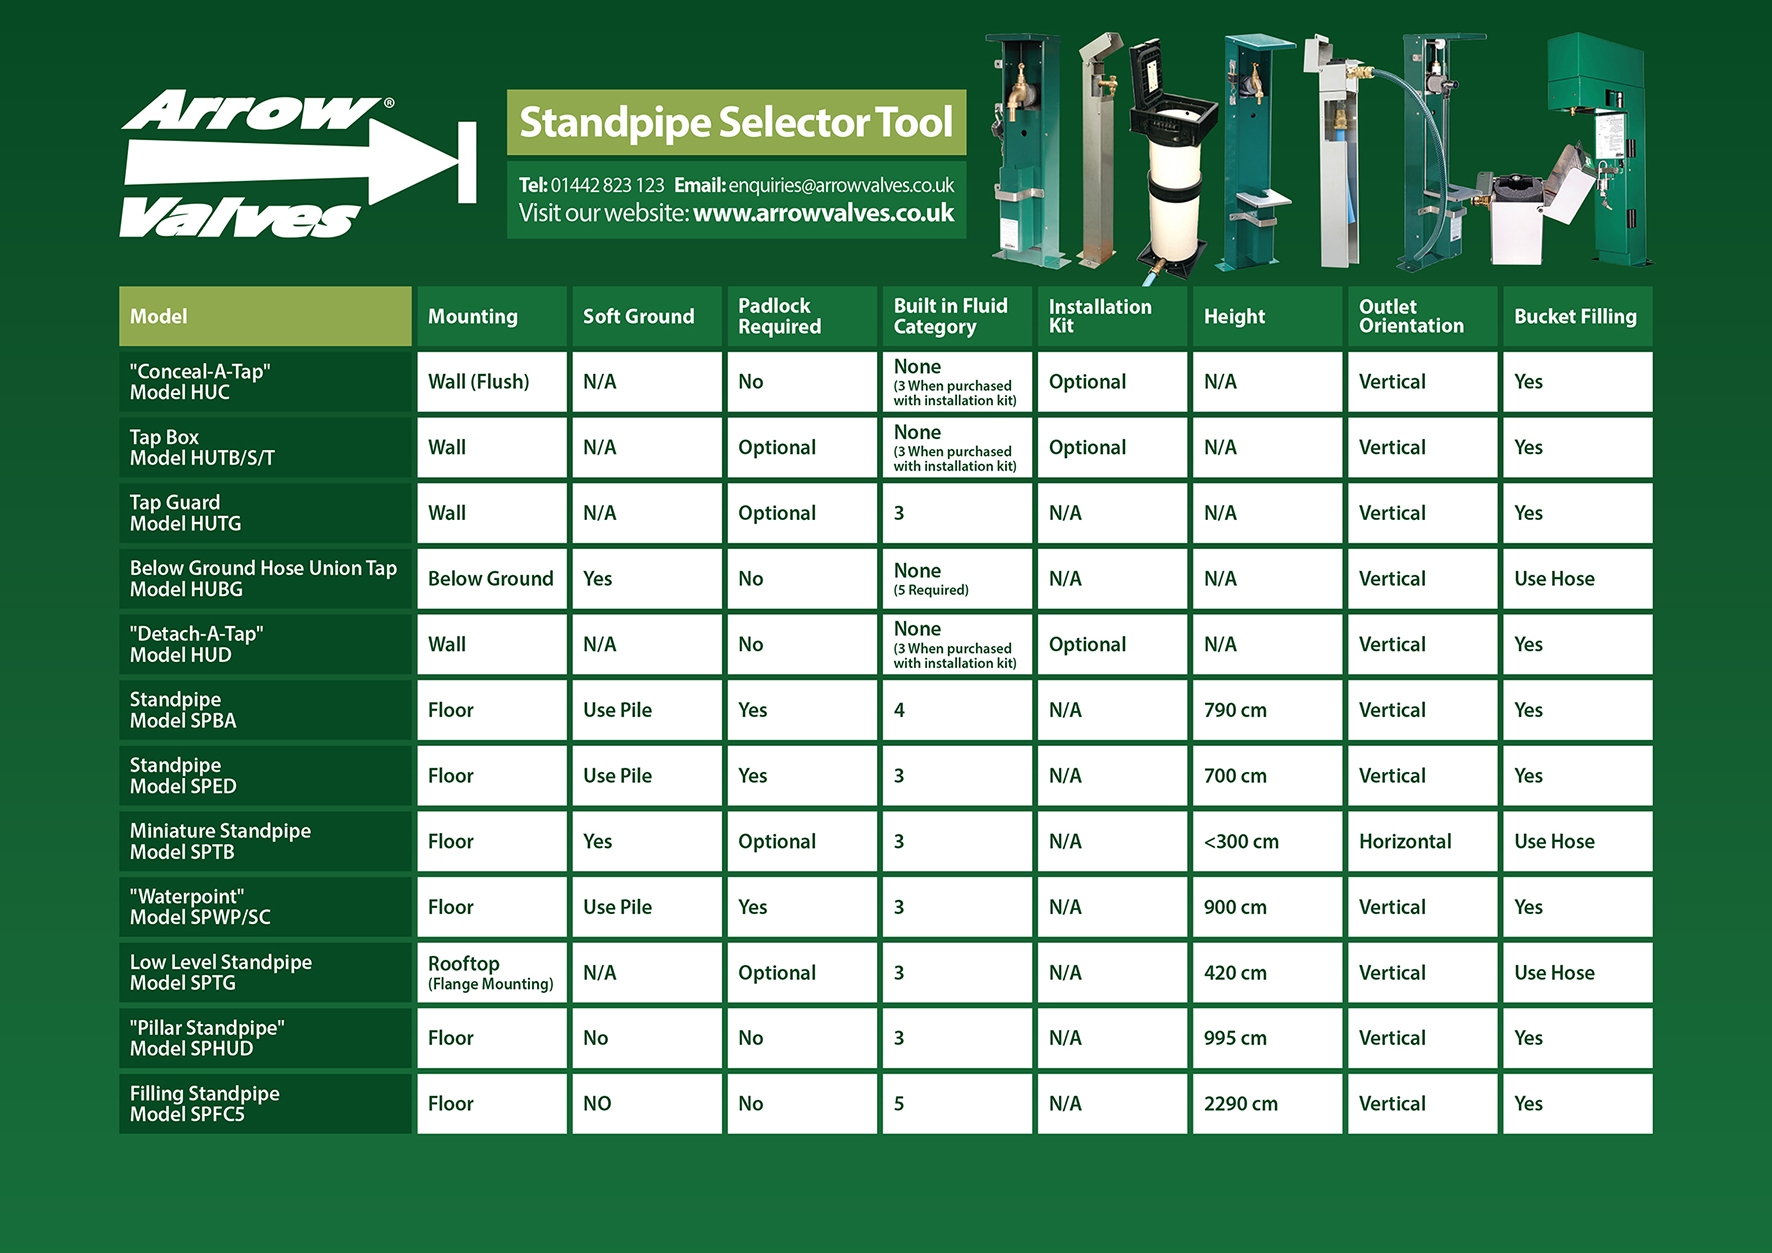 Arrow Valves Standpipe Selector Tool